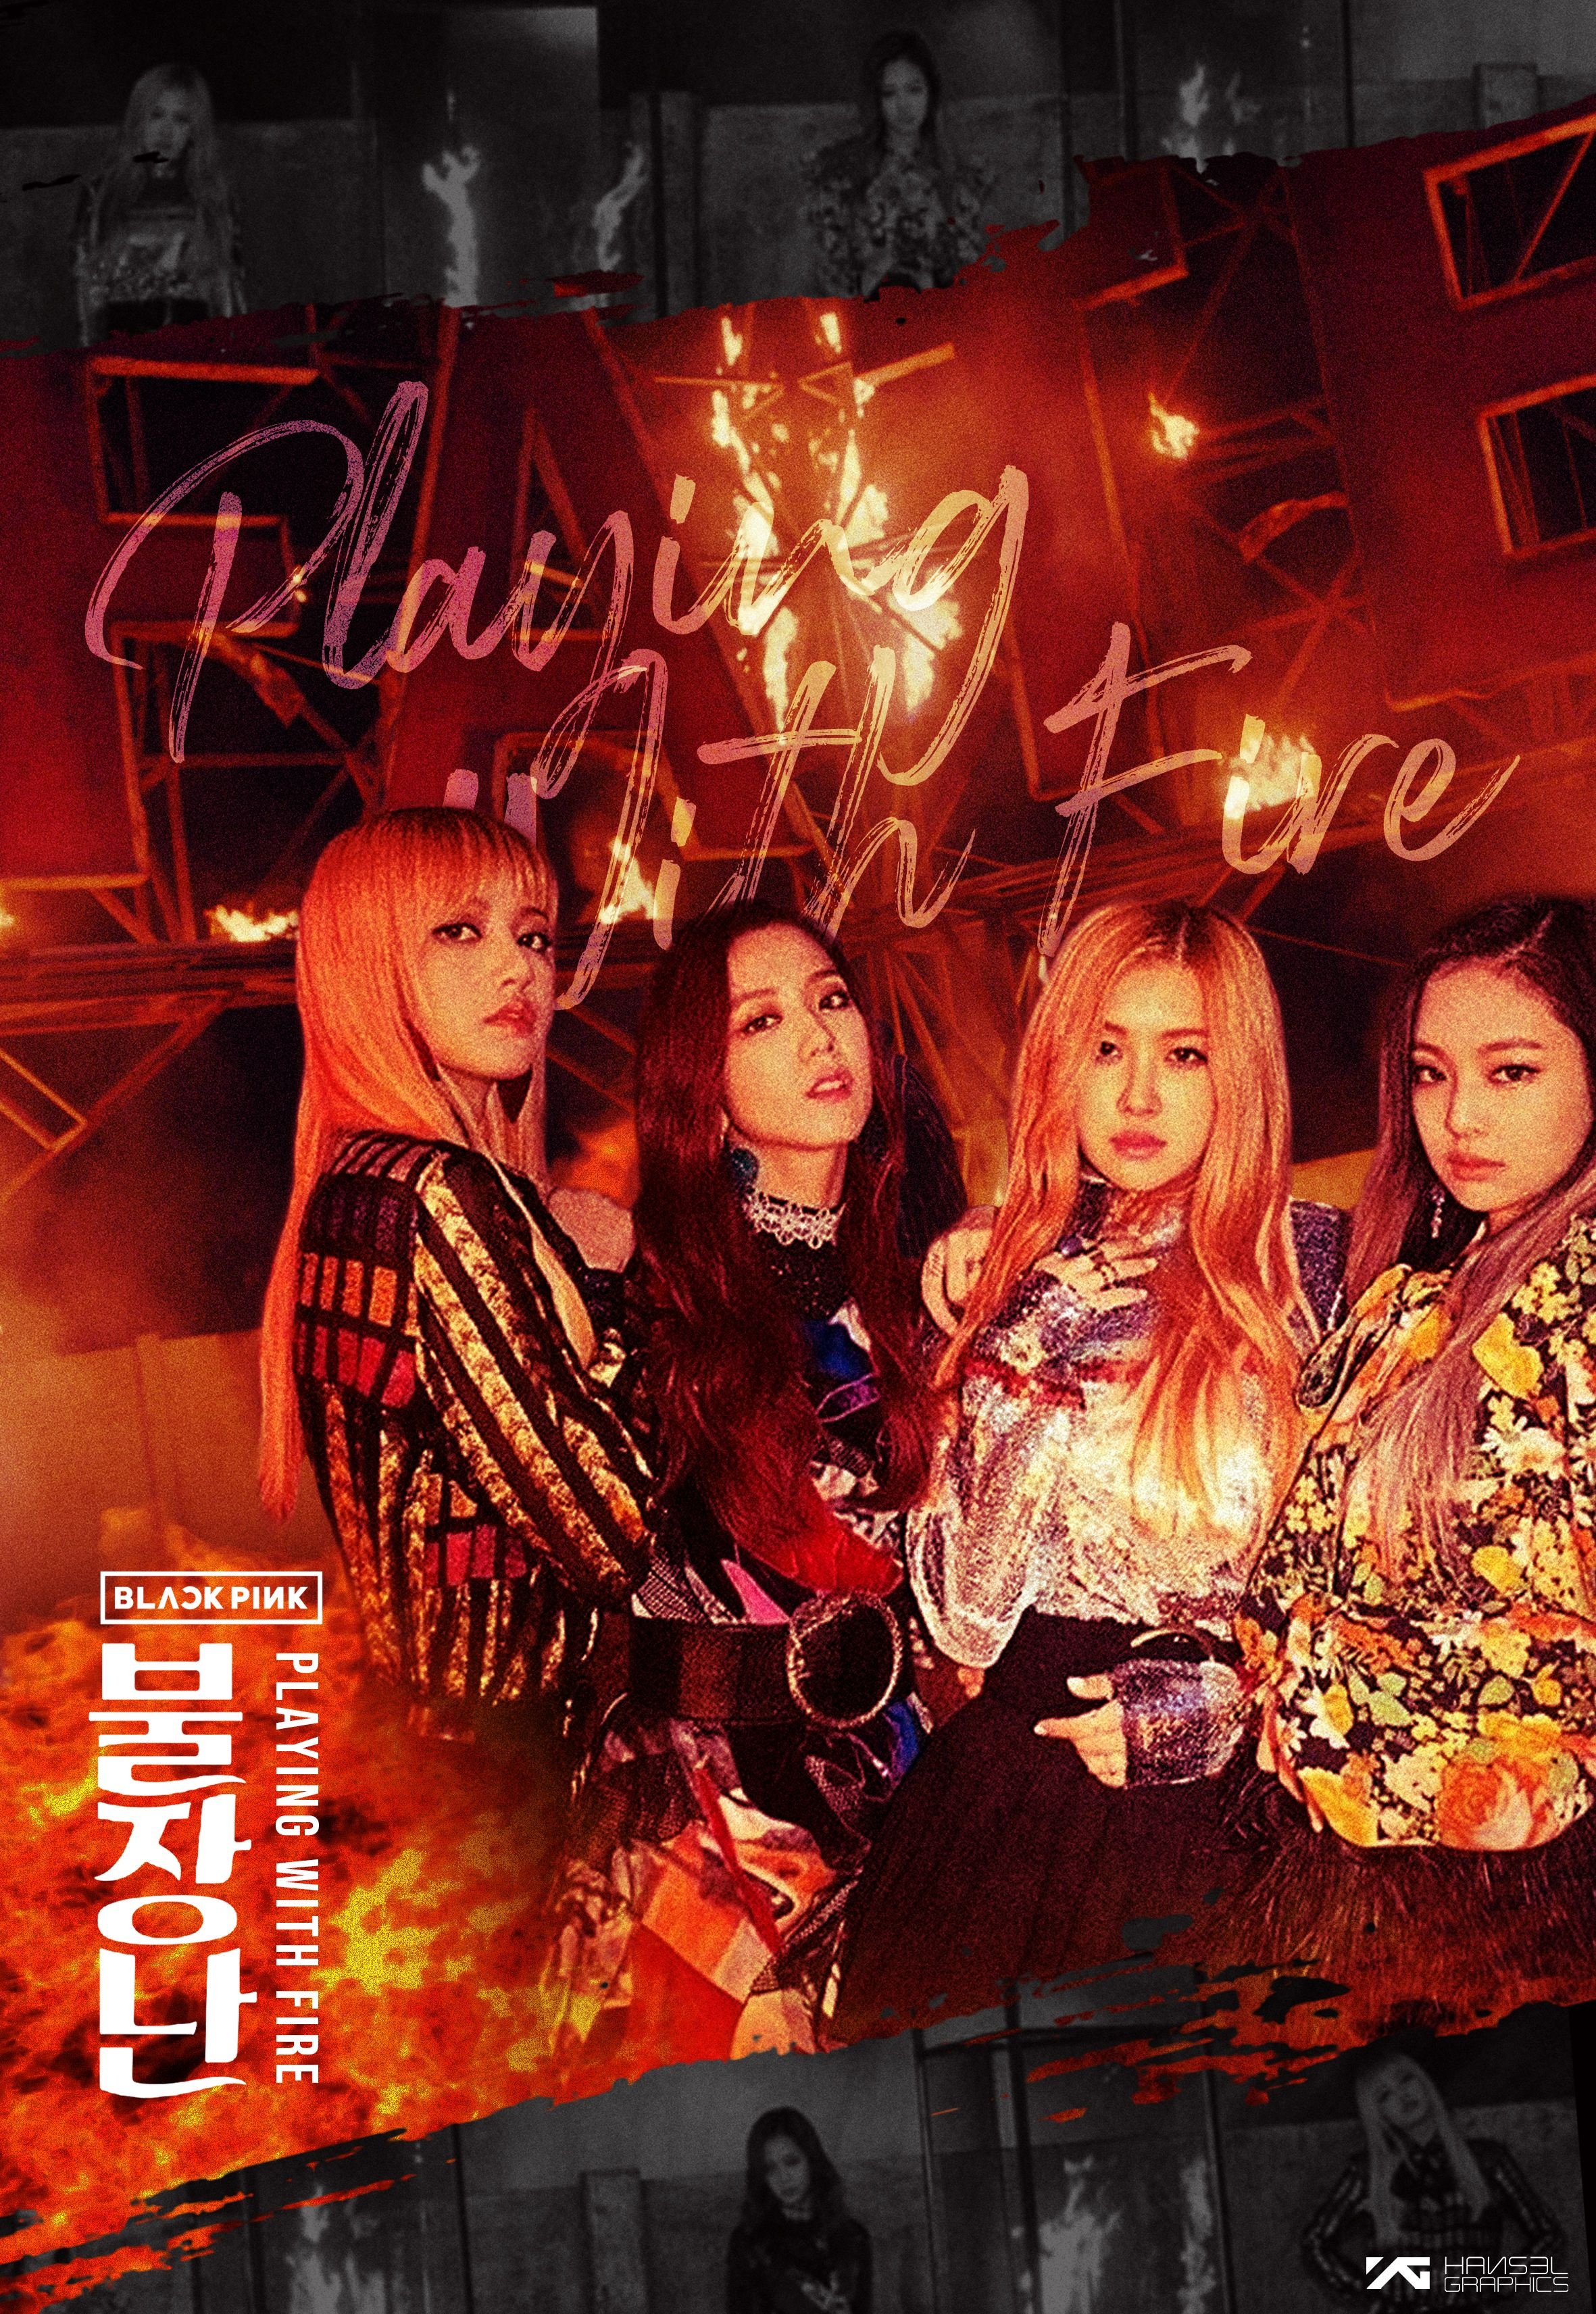 BLACKPINK 'Playing With Fire' Poster   Blackpink playing with fire, Blackpink poster, Blackpink playing with fire album cover